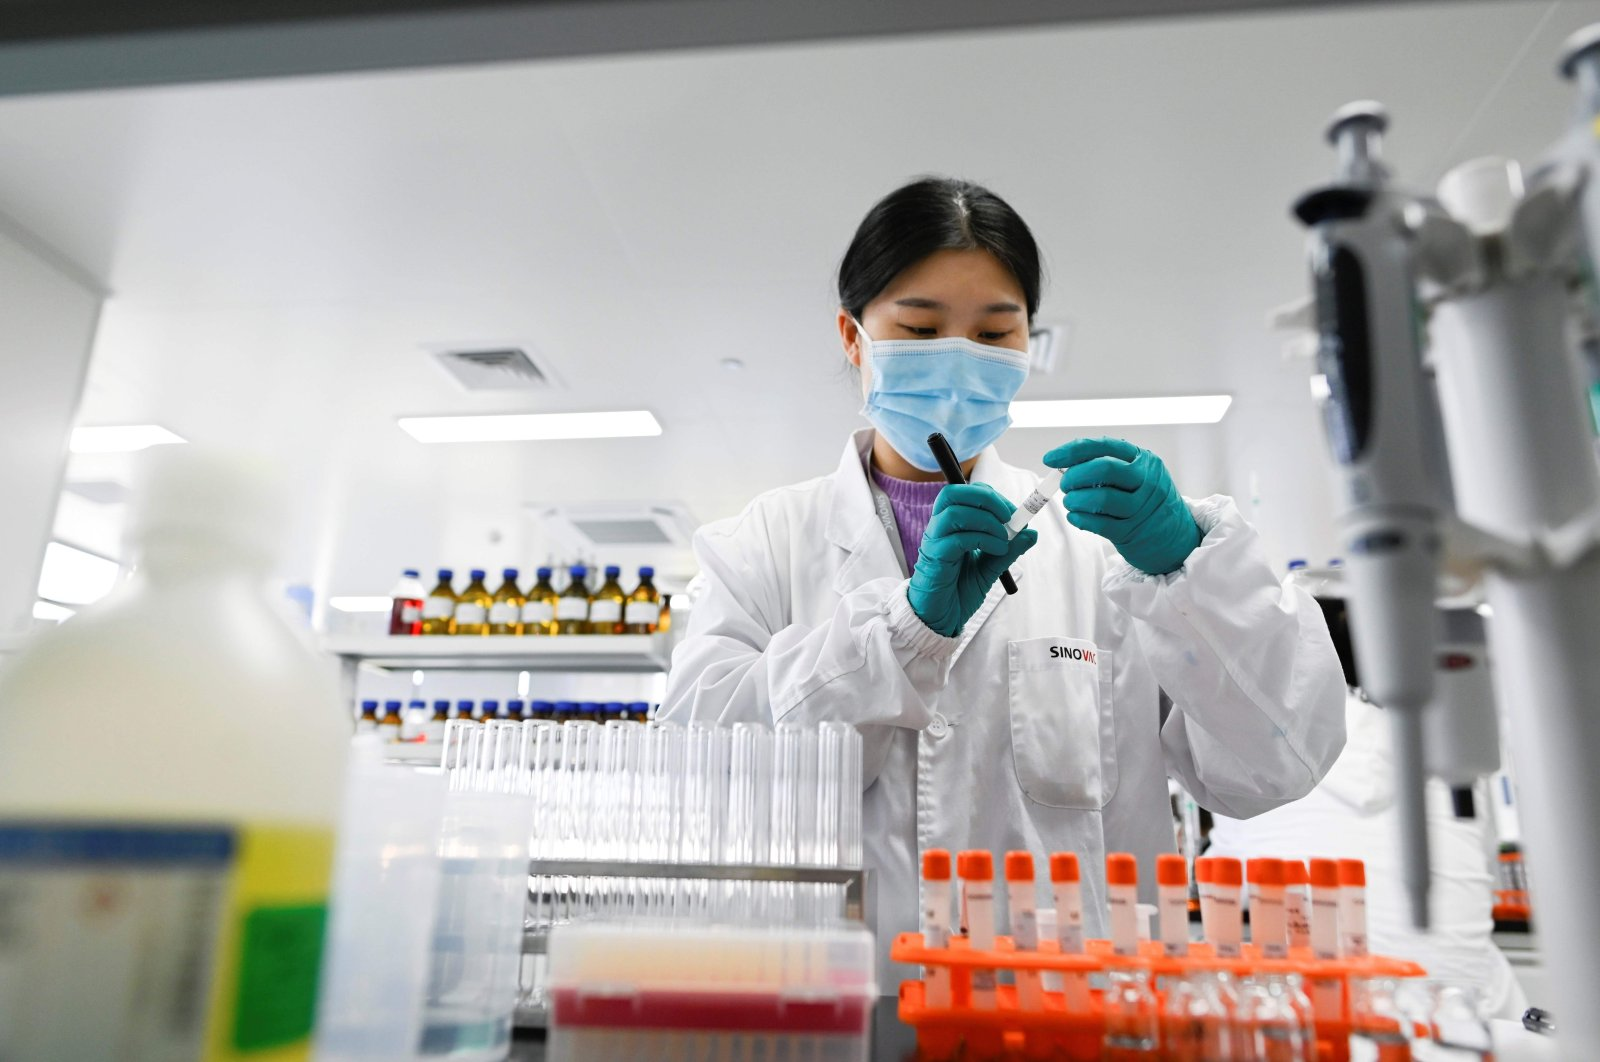 An engineer works on a COVID-19 vaccine at a laboratory of the Chinese pharmaceutical firm Sinovac, Beijing, China, Sept. 24, 2020. (AFP Photo)